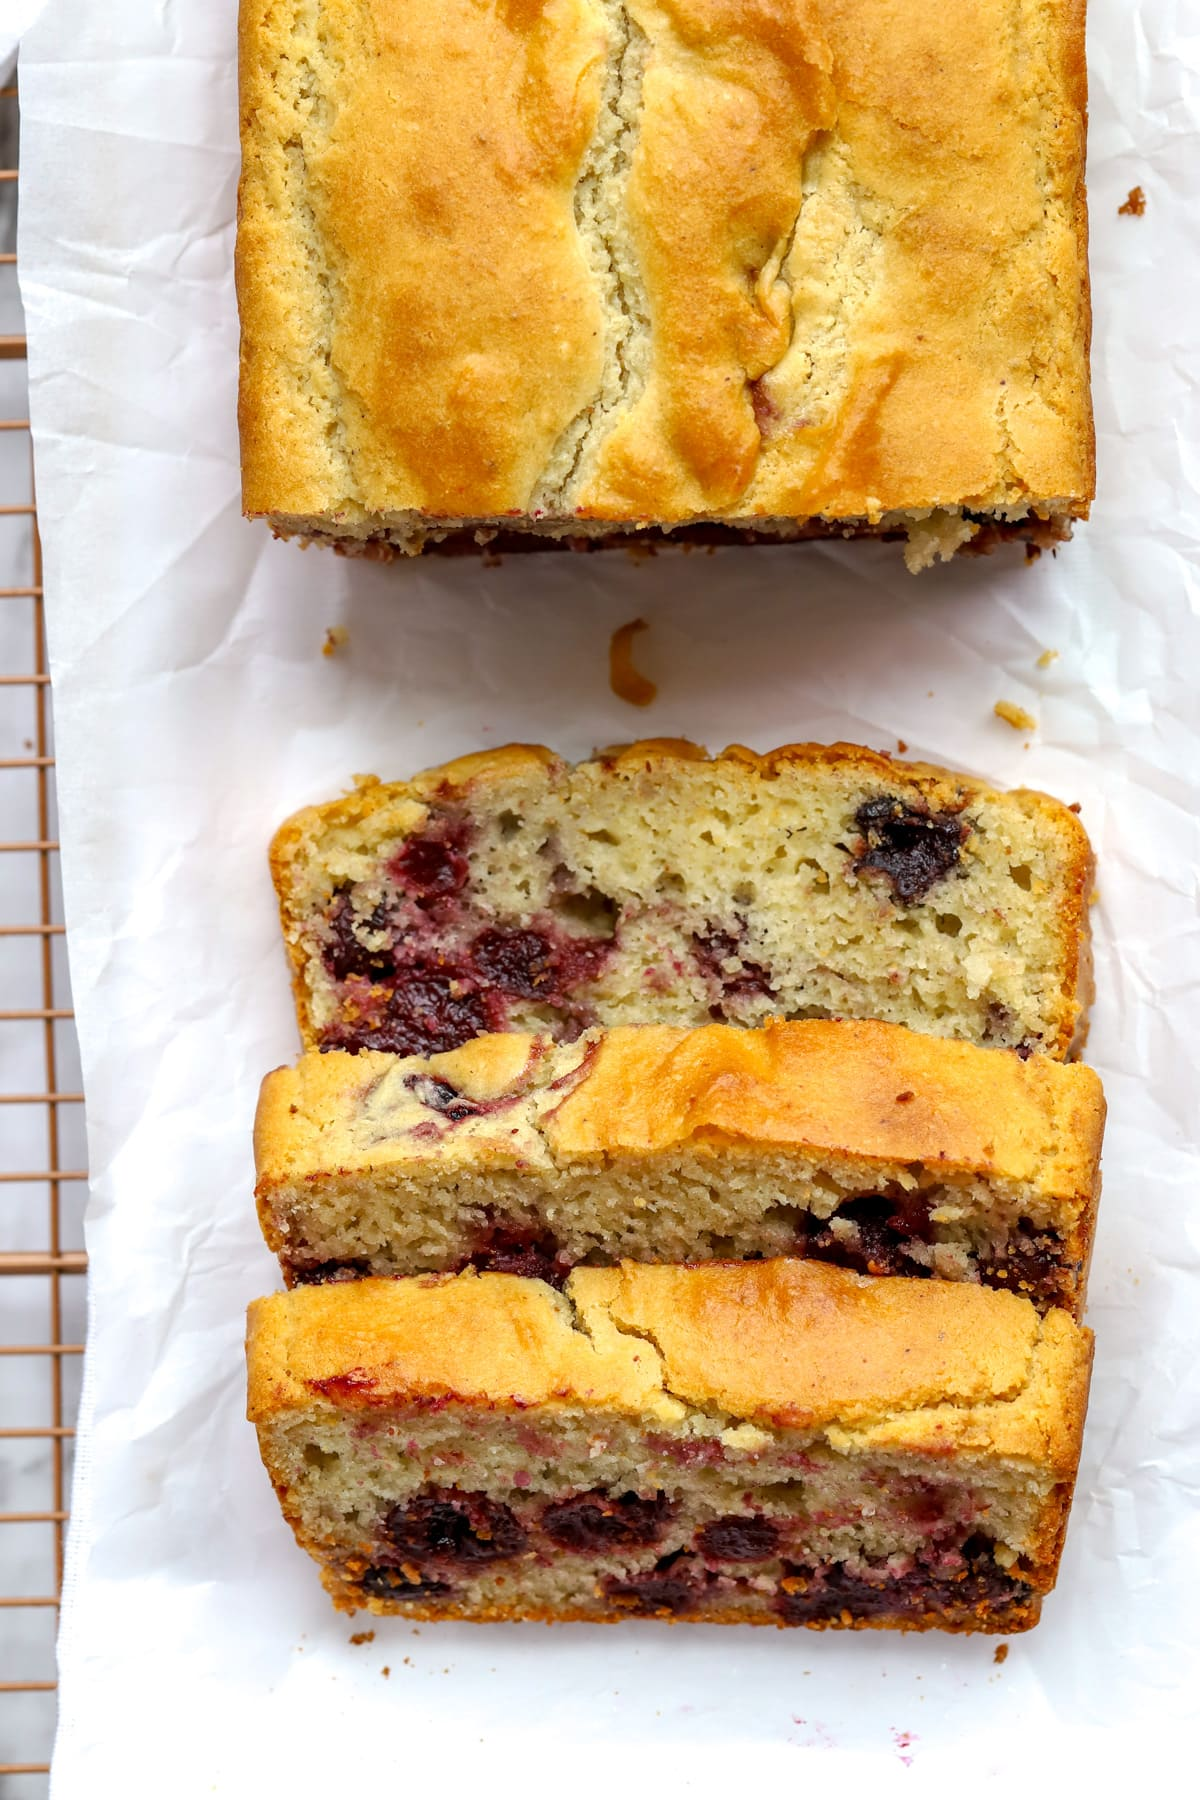 Overhead view of baked cherry bread on parchment paper with slices of bread with cherries